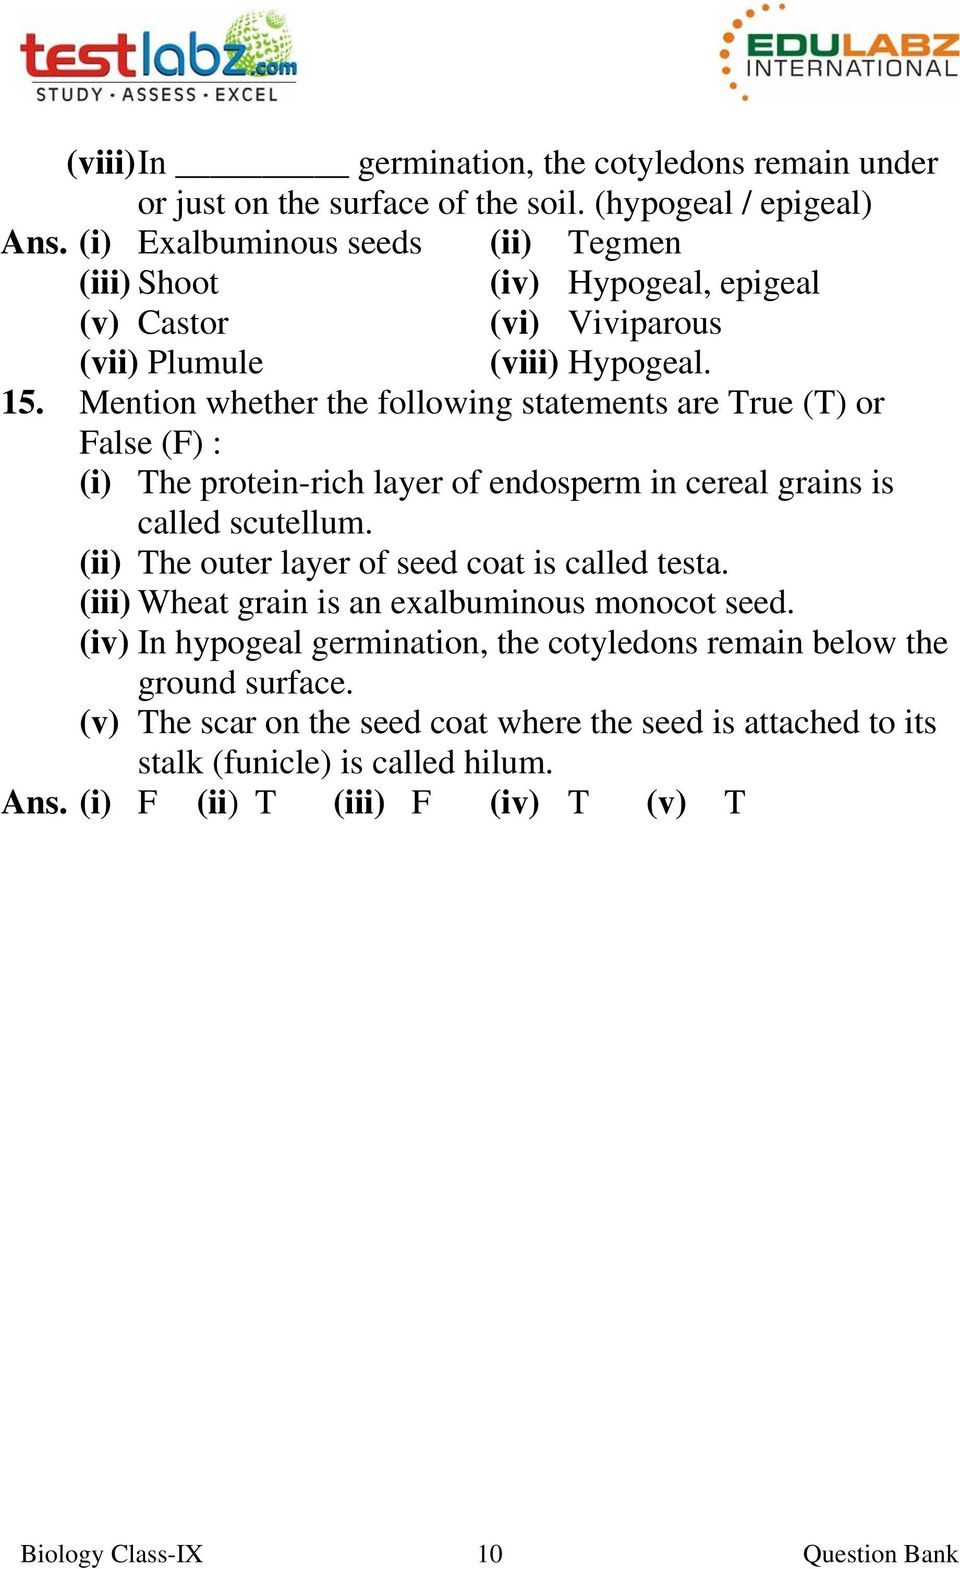 Question Bank Seed Structure Types And Germination Pdf Diagram Monocot Mention Whether The Following Statements Are True T Or False F